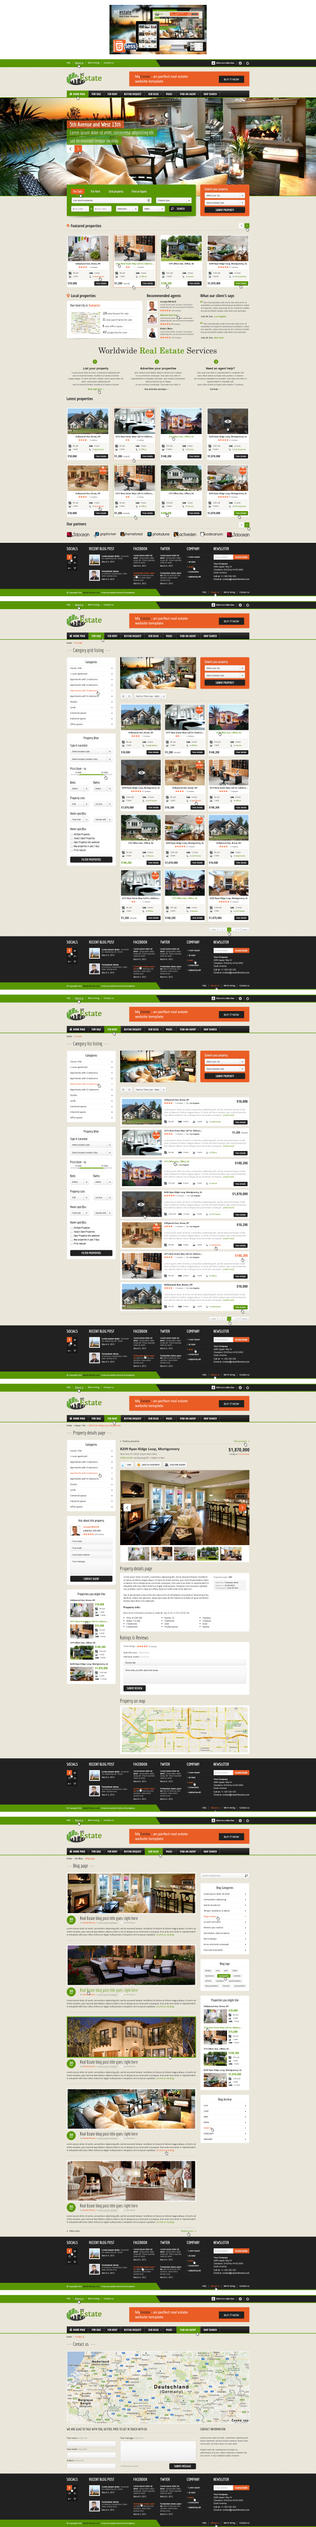 MT Real Estate Multipurpose HTML5 / CSS3 Template by brillianthemes